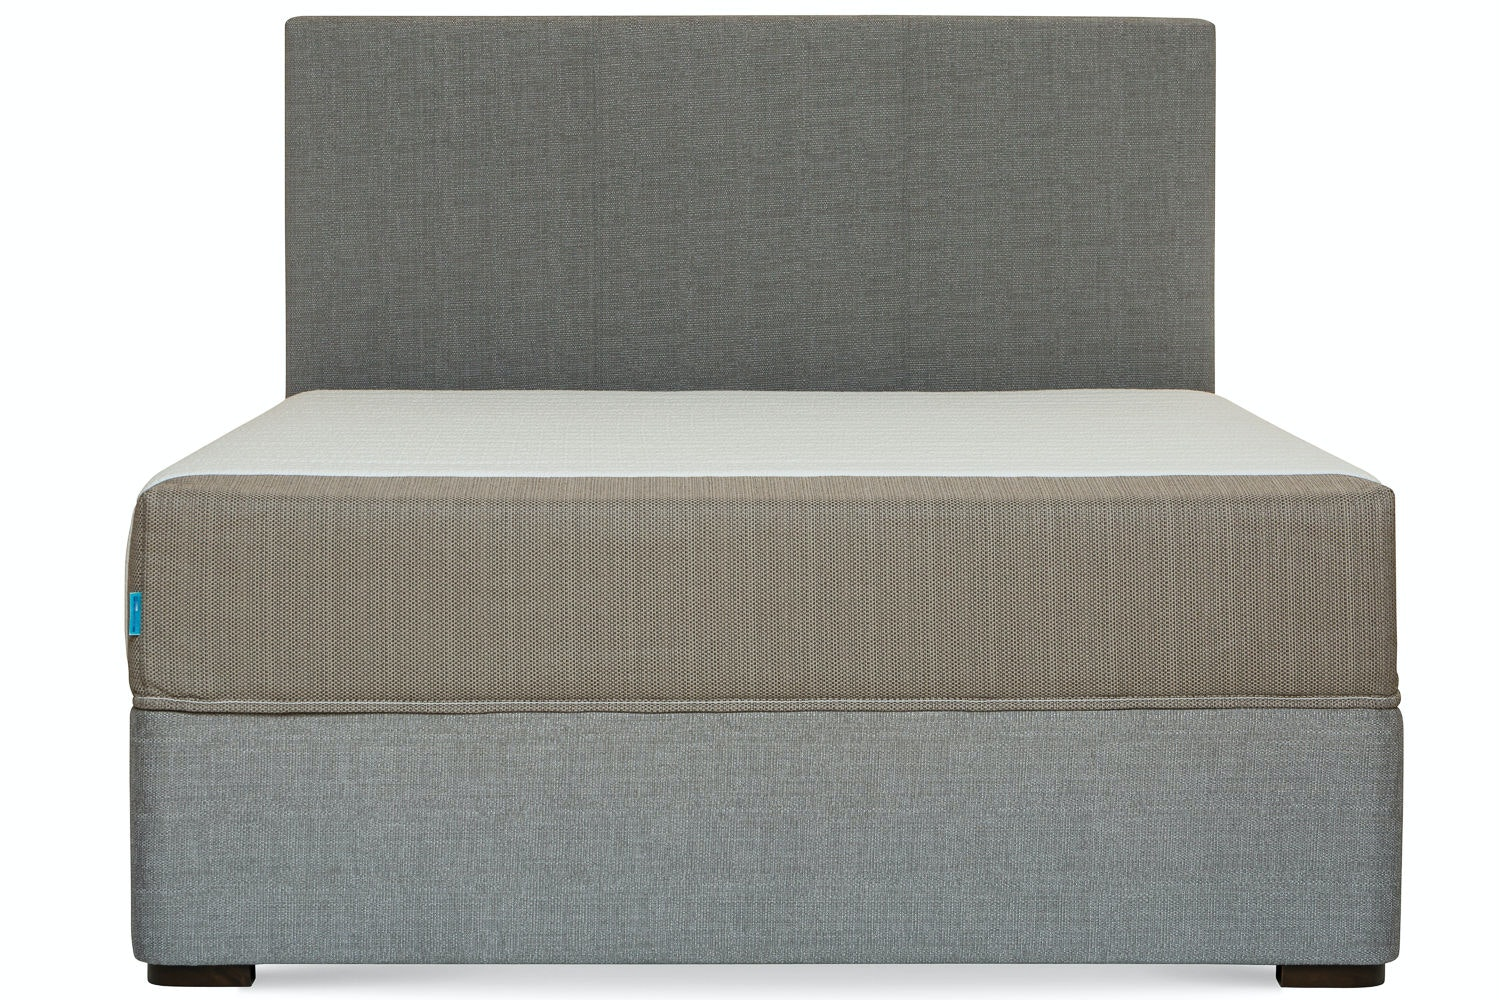 Duval Bed | Vertical Stitch | Grey | 6ft